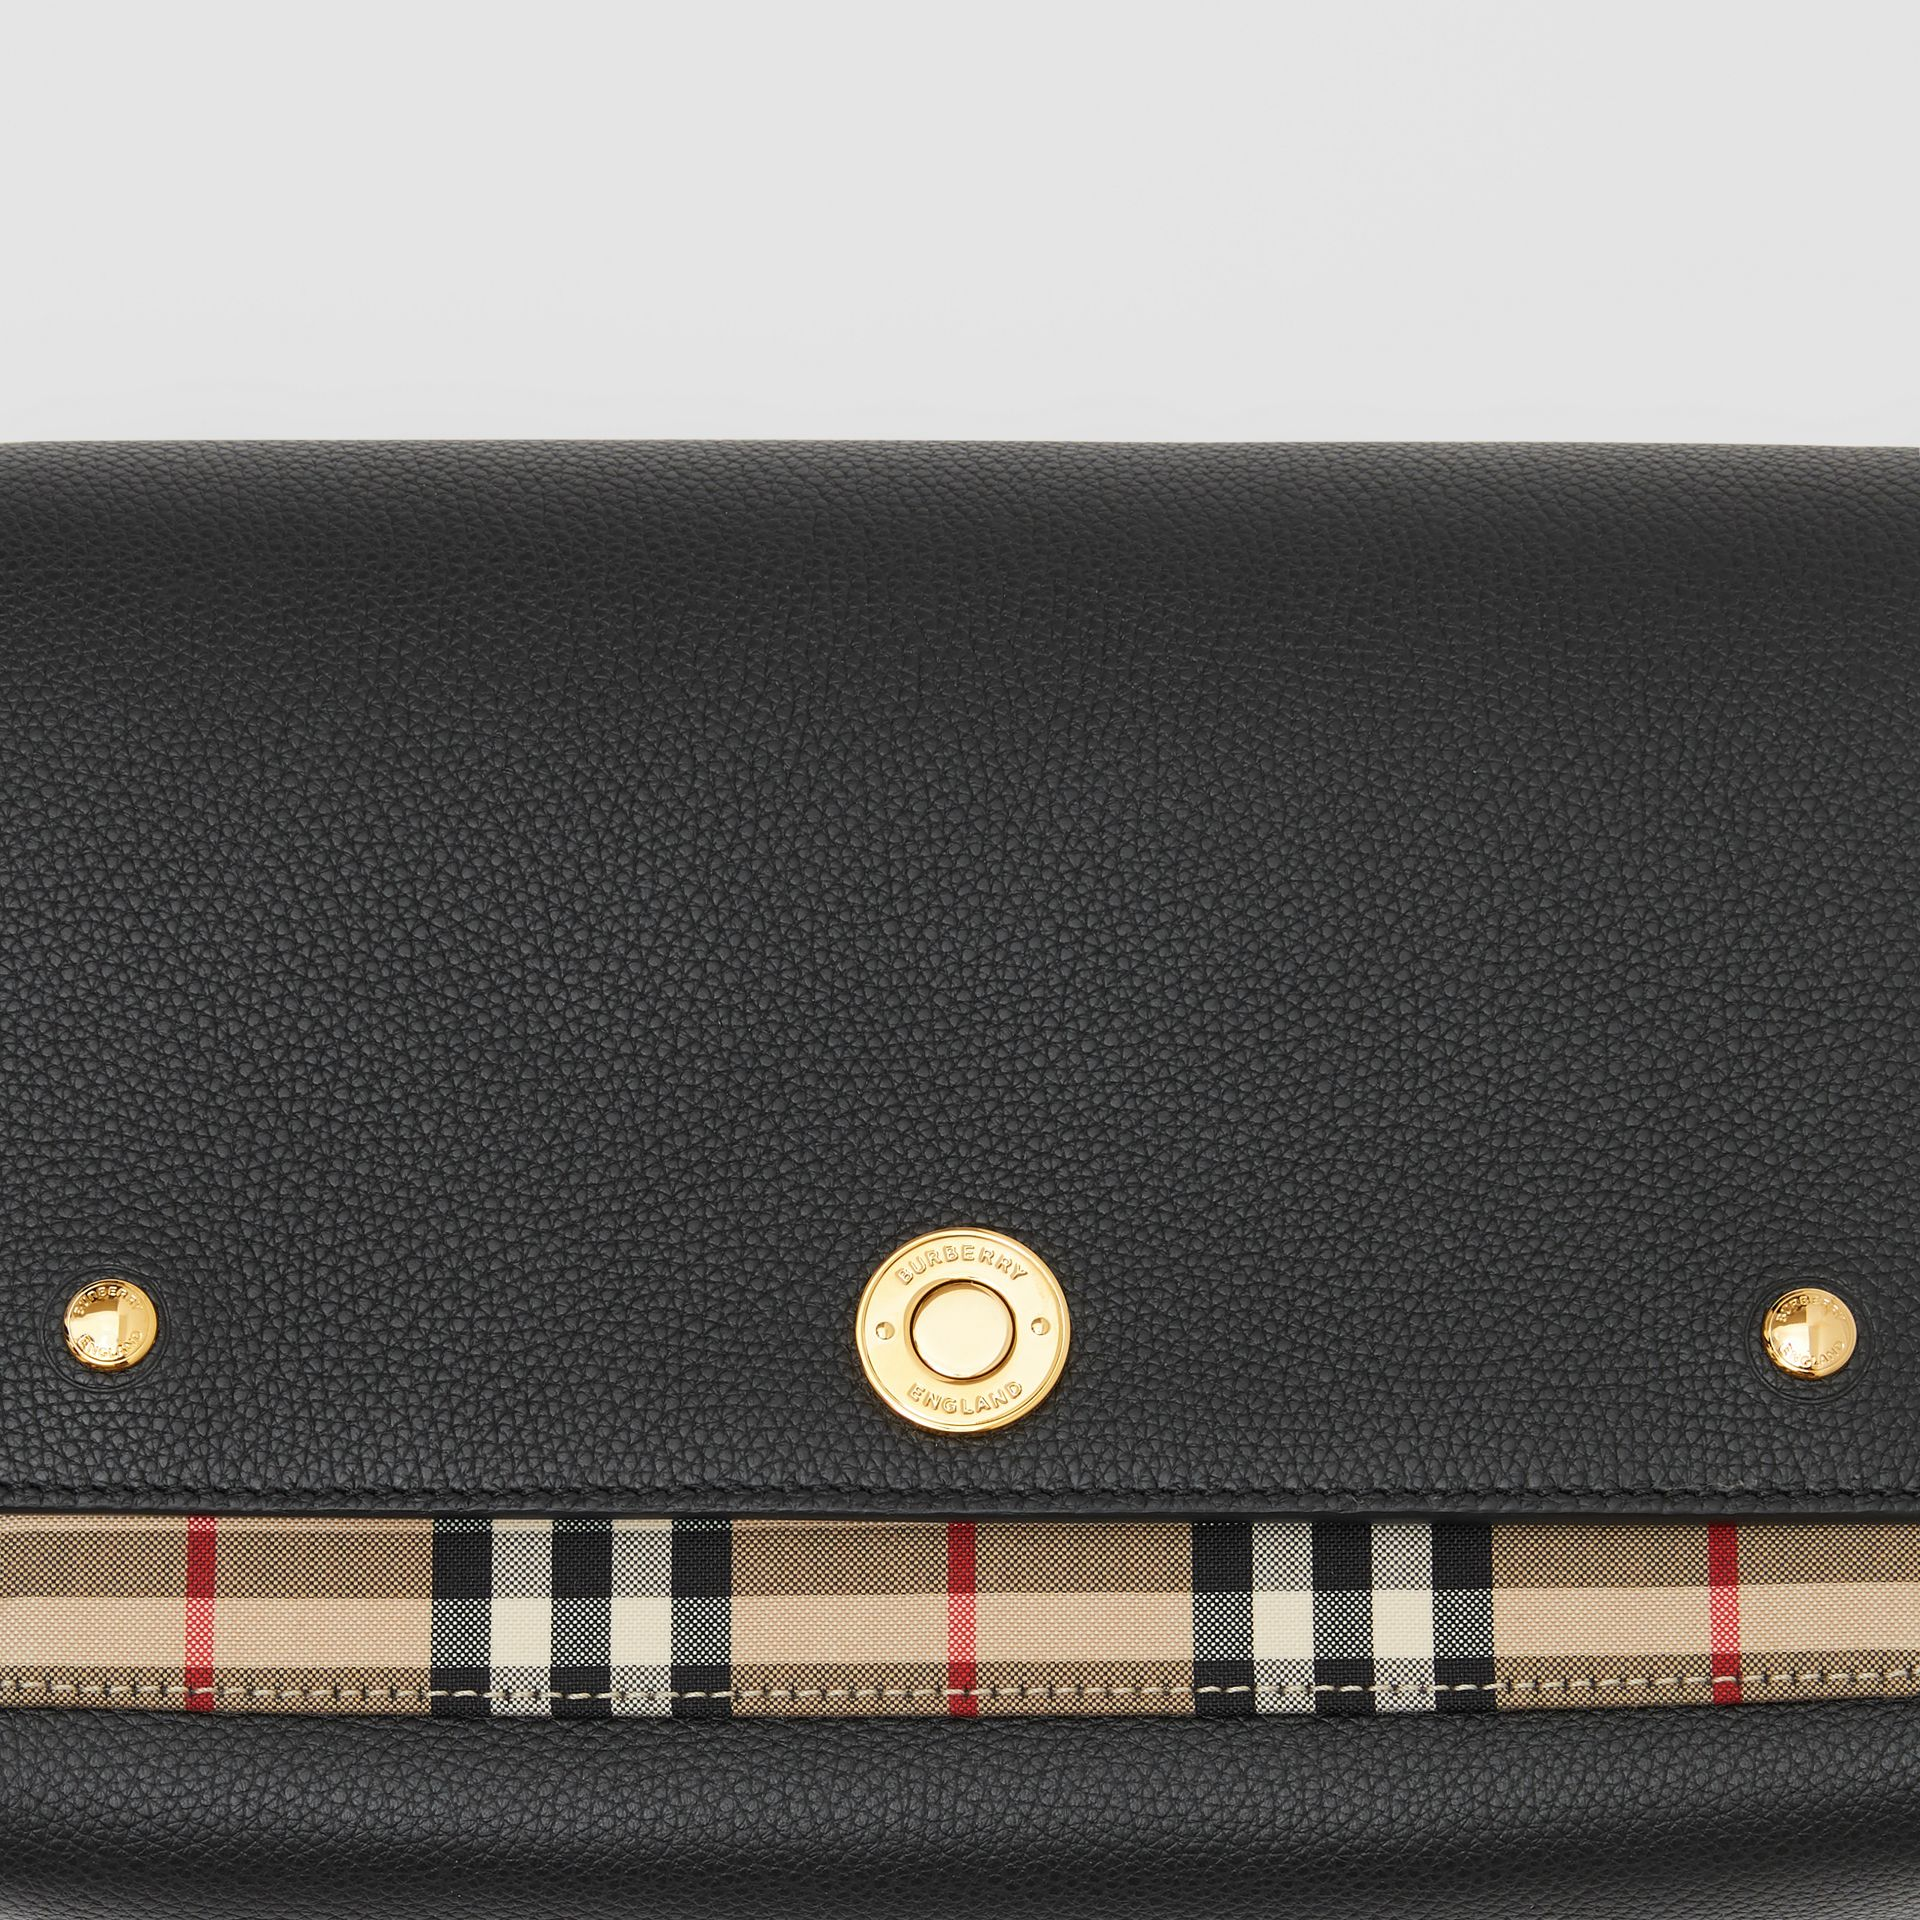 Leather and Vintage Check Note Crossbody Bag in Black - Women | Burberry Singapore - gallery image 1